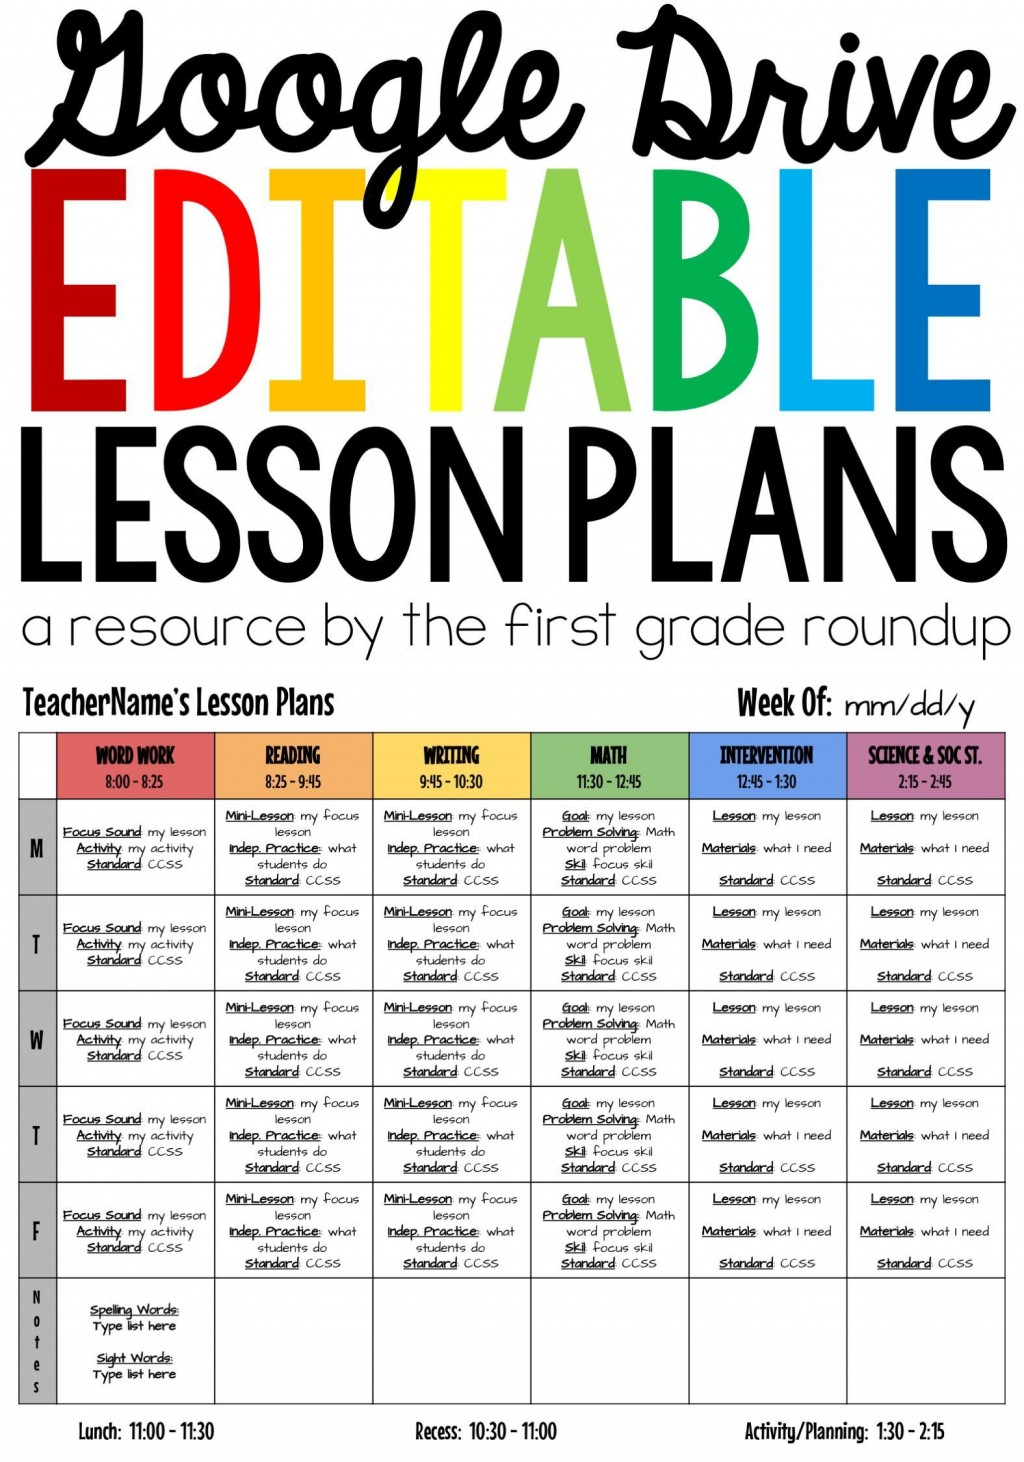 004 Dreaded Free Weekly Lesson Plan Template Google Doc High Definition Large